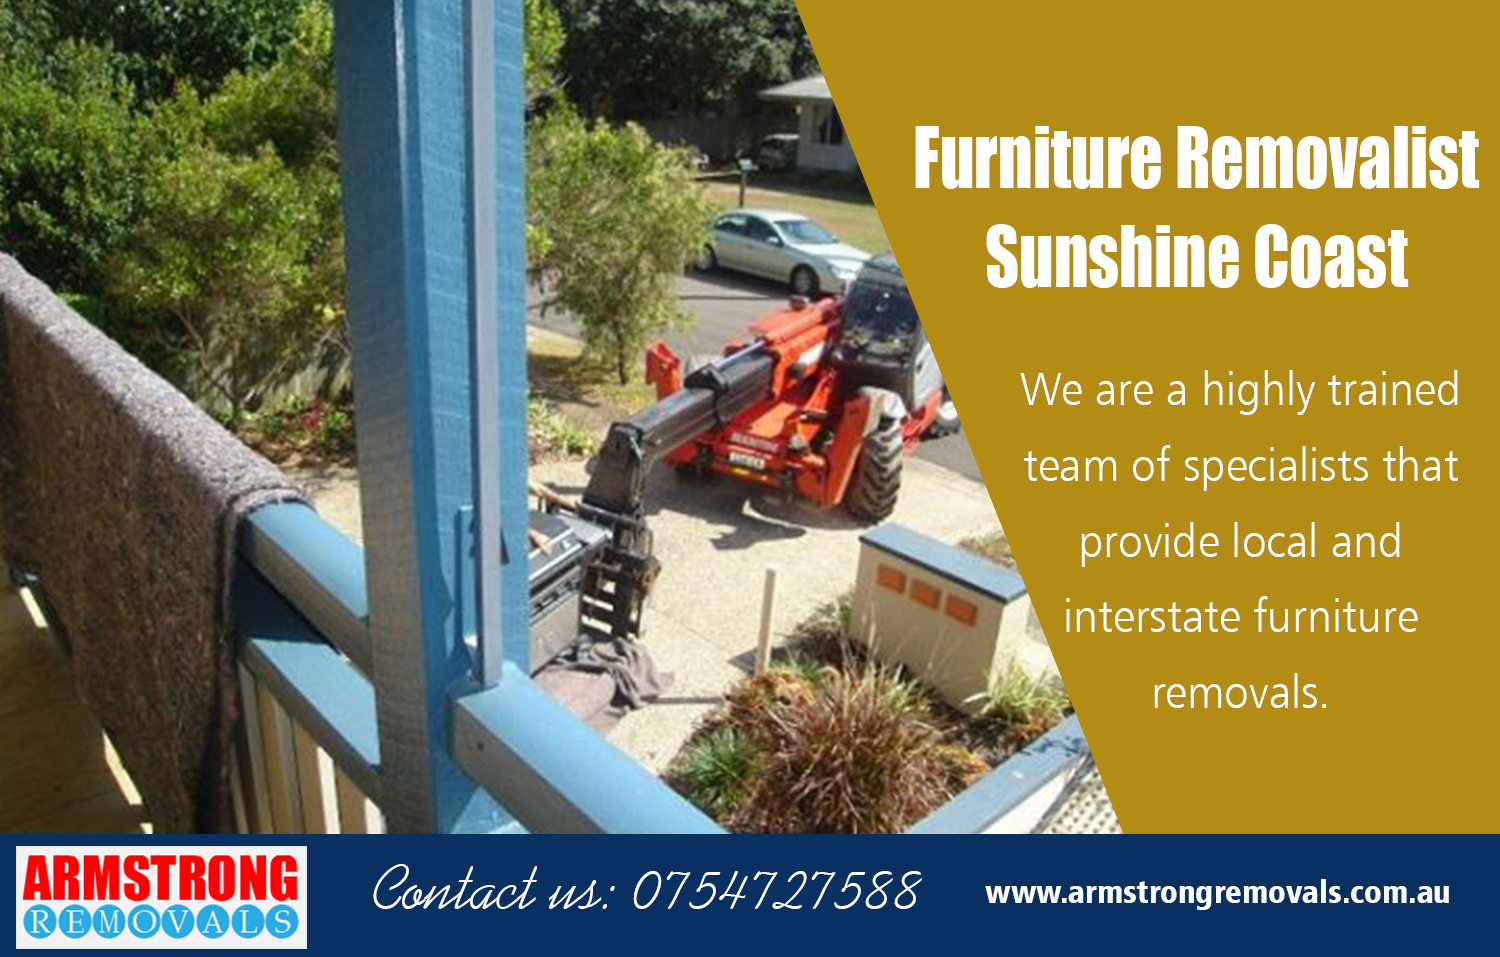 Furniture Removalist Sunshine Coast